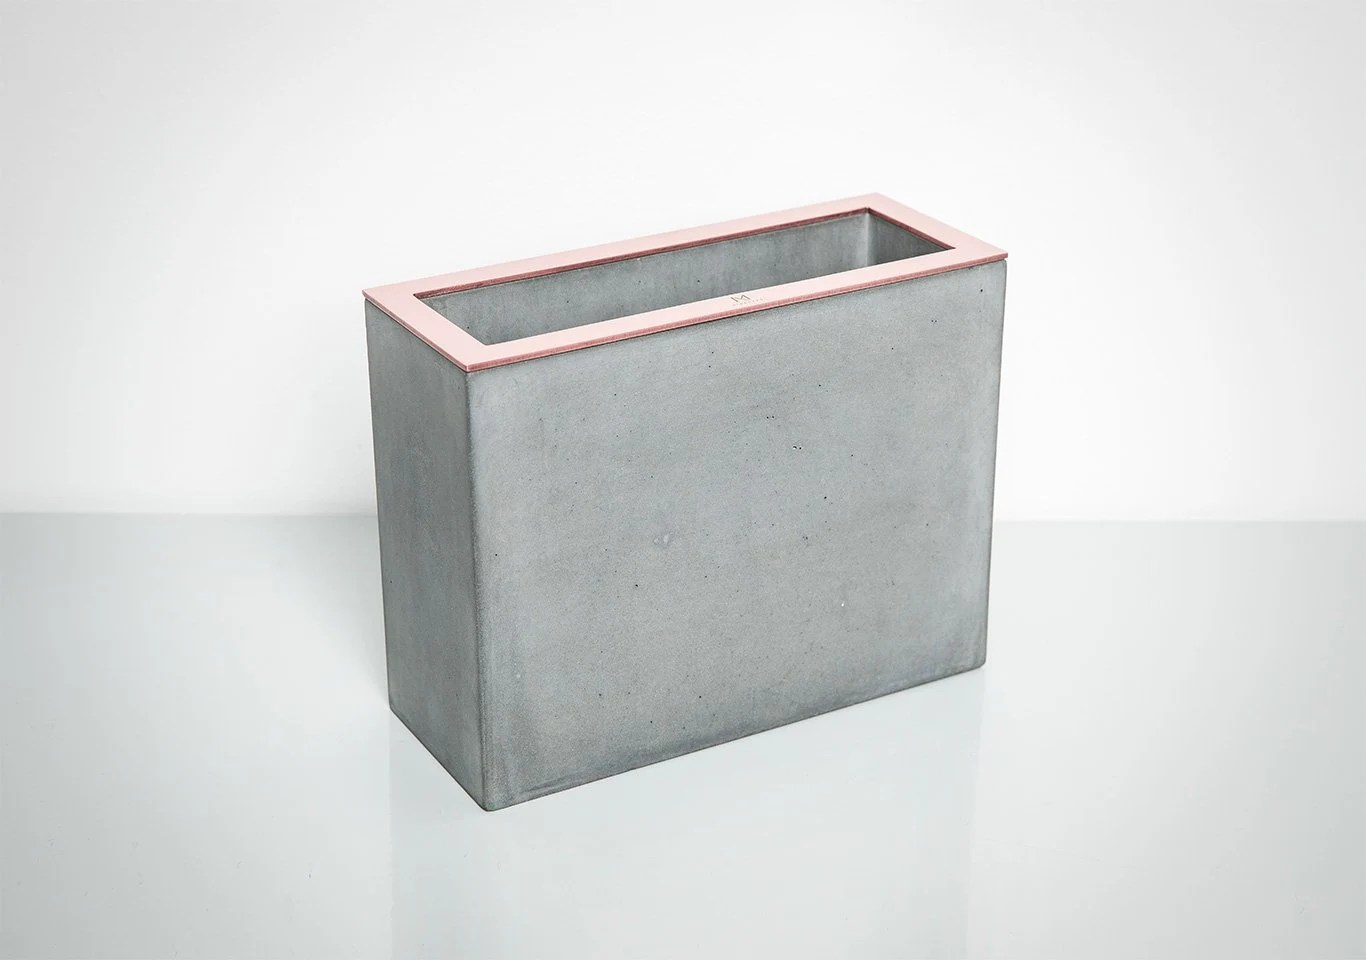 Cement Beton Vase Mv2 1 Concrete Vase Modern Vase Cement Beton Modern Home Decor Concrete Decor Gift Idea